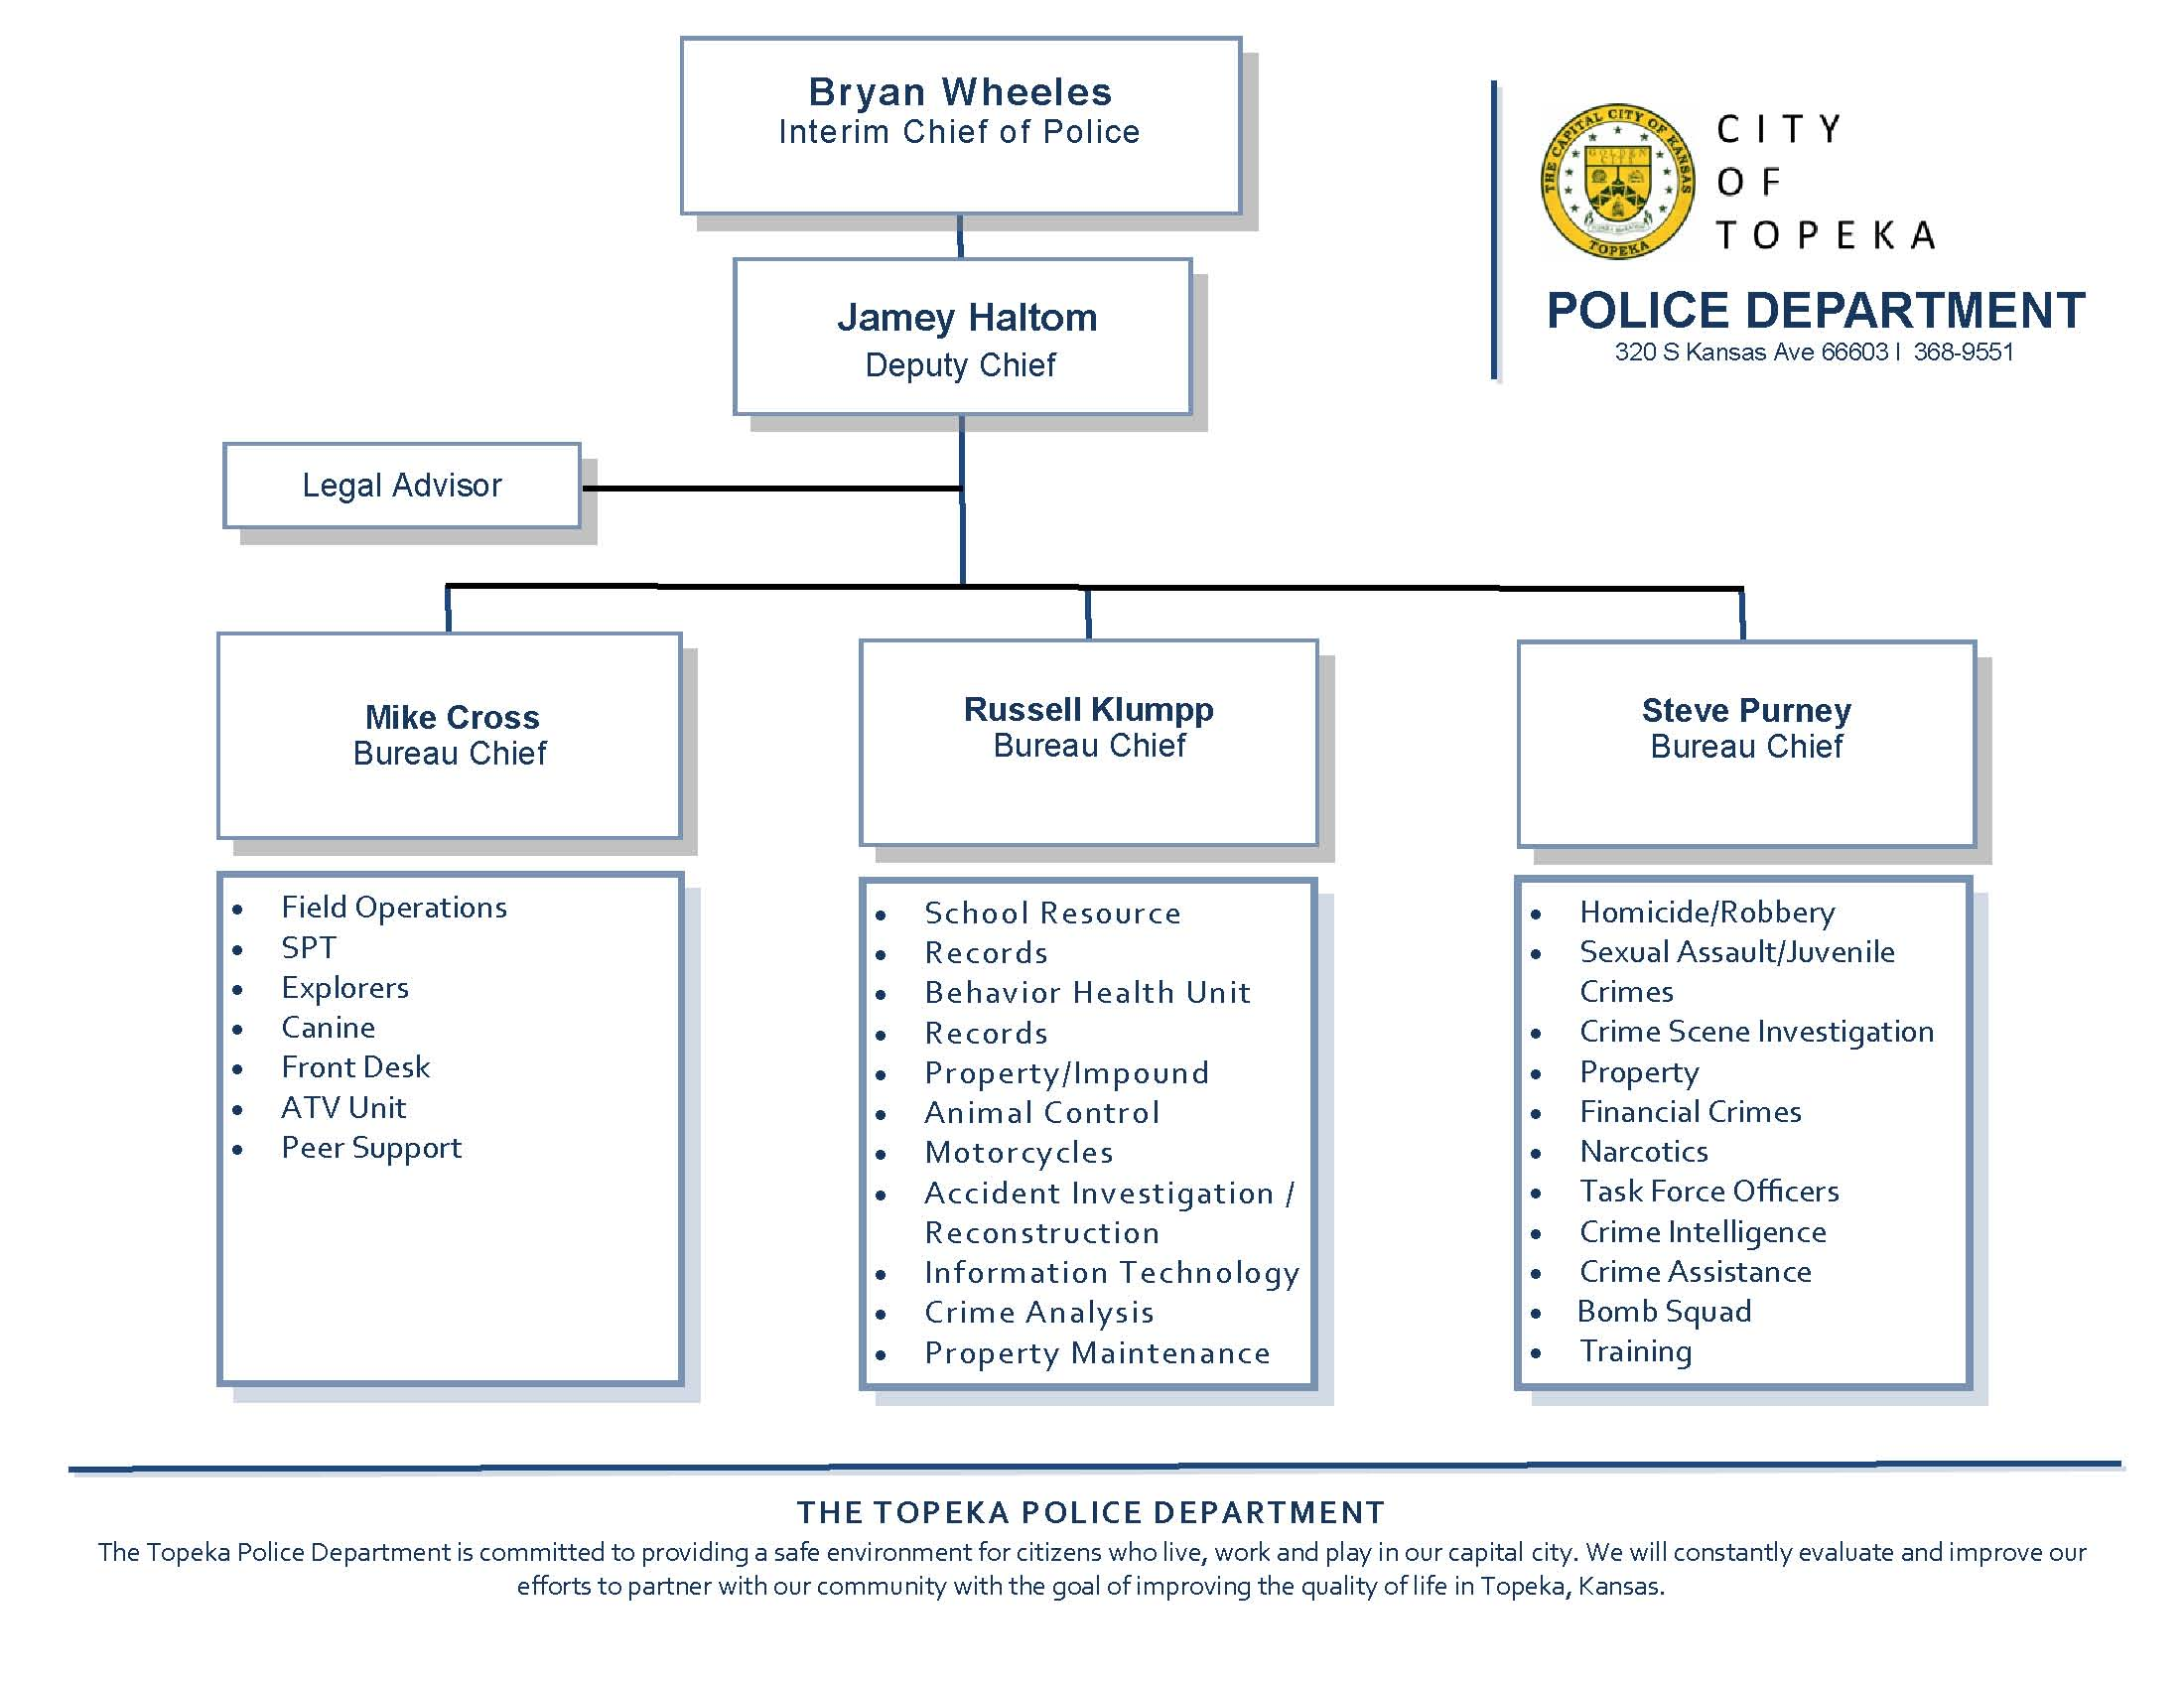 Police Department | City of Topeka